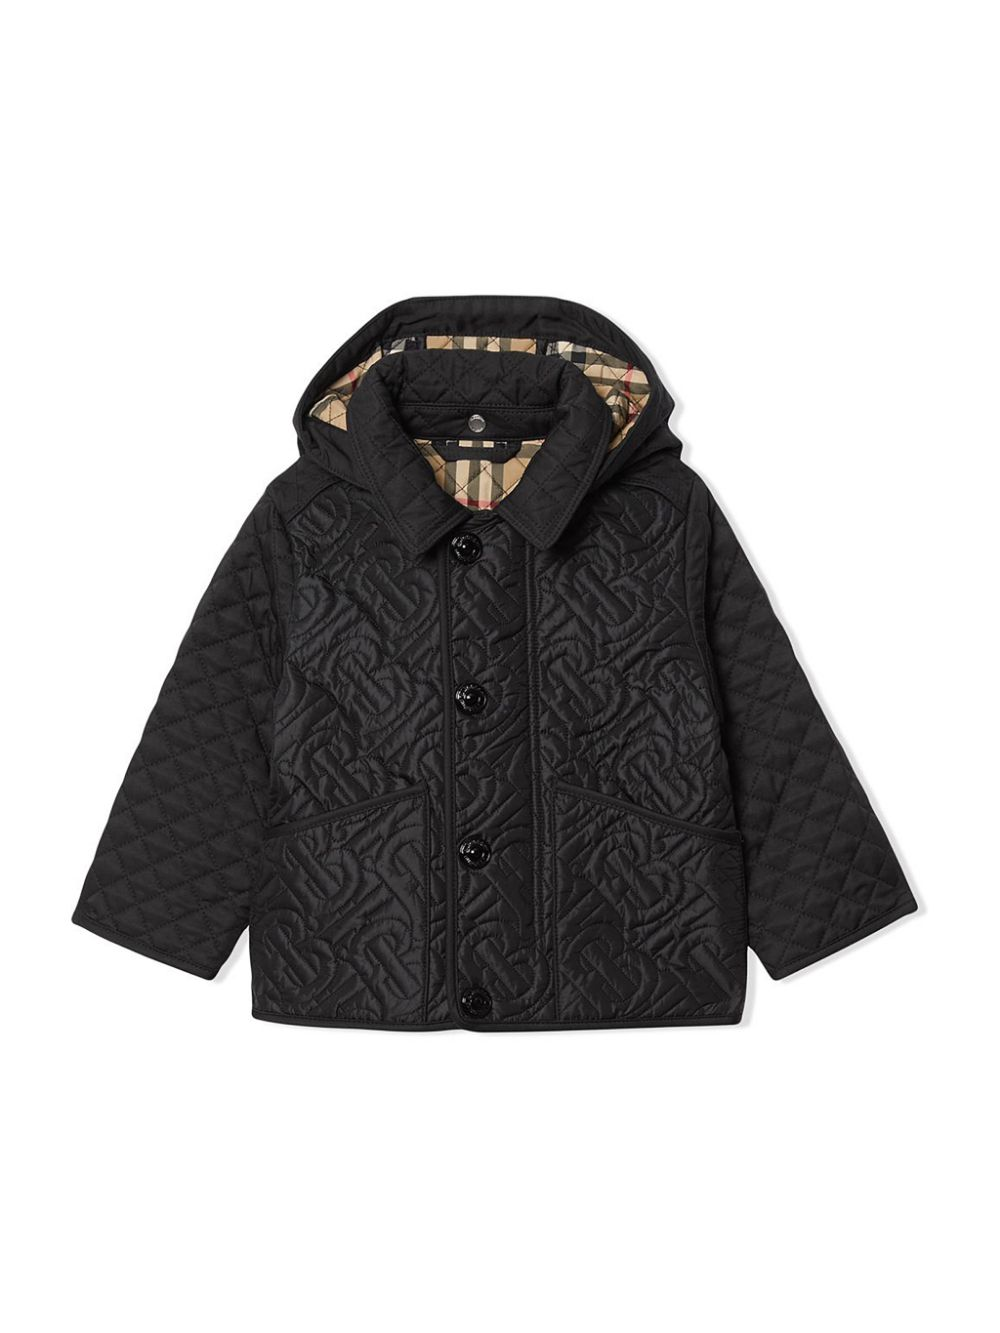 QUILTED JACKET BURBERRY KIDS |  | 8036887A1189